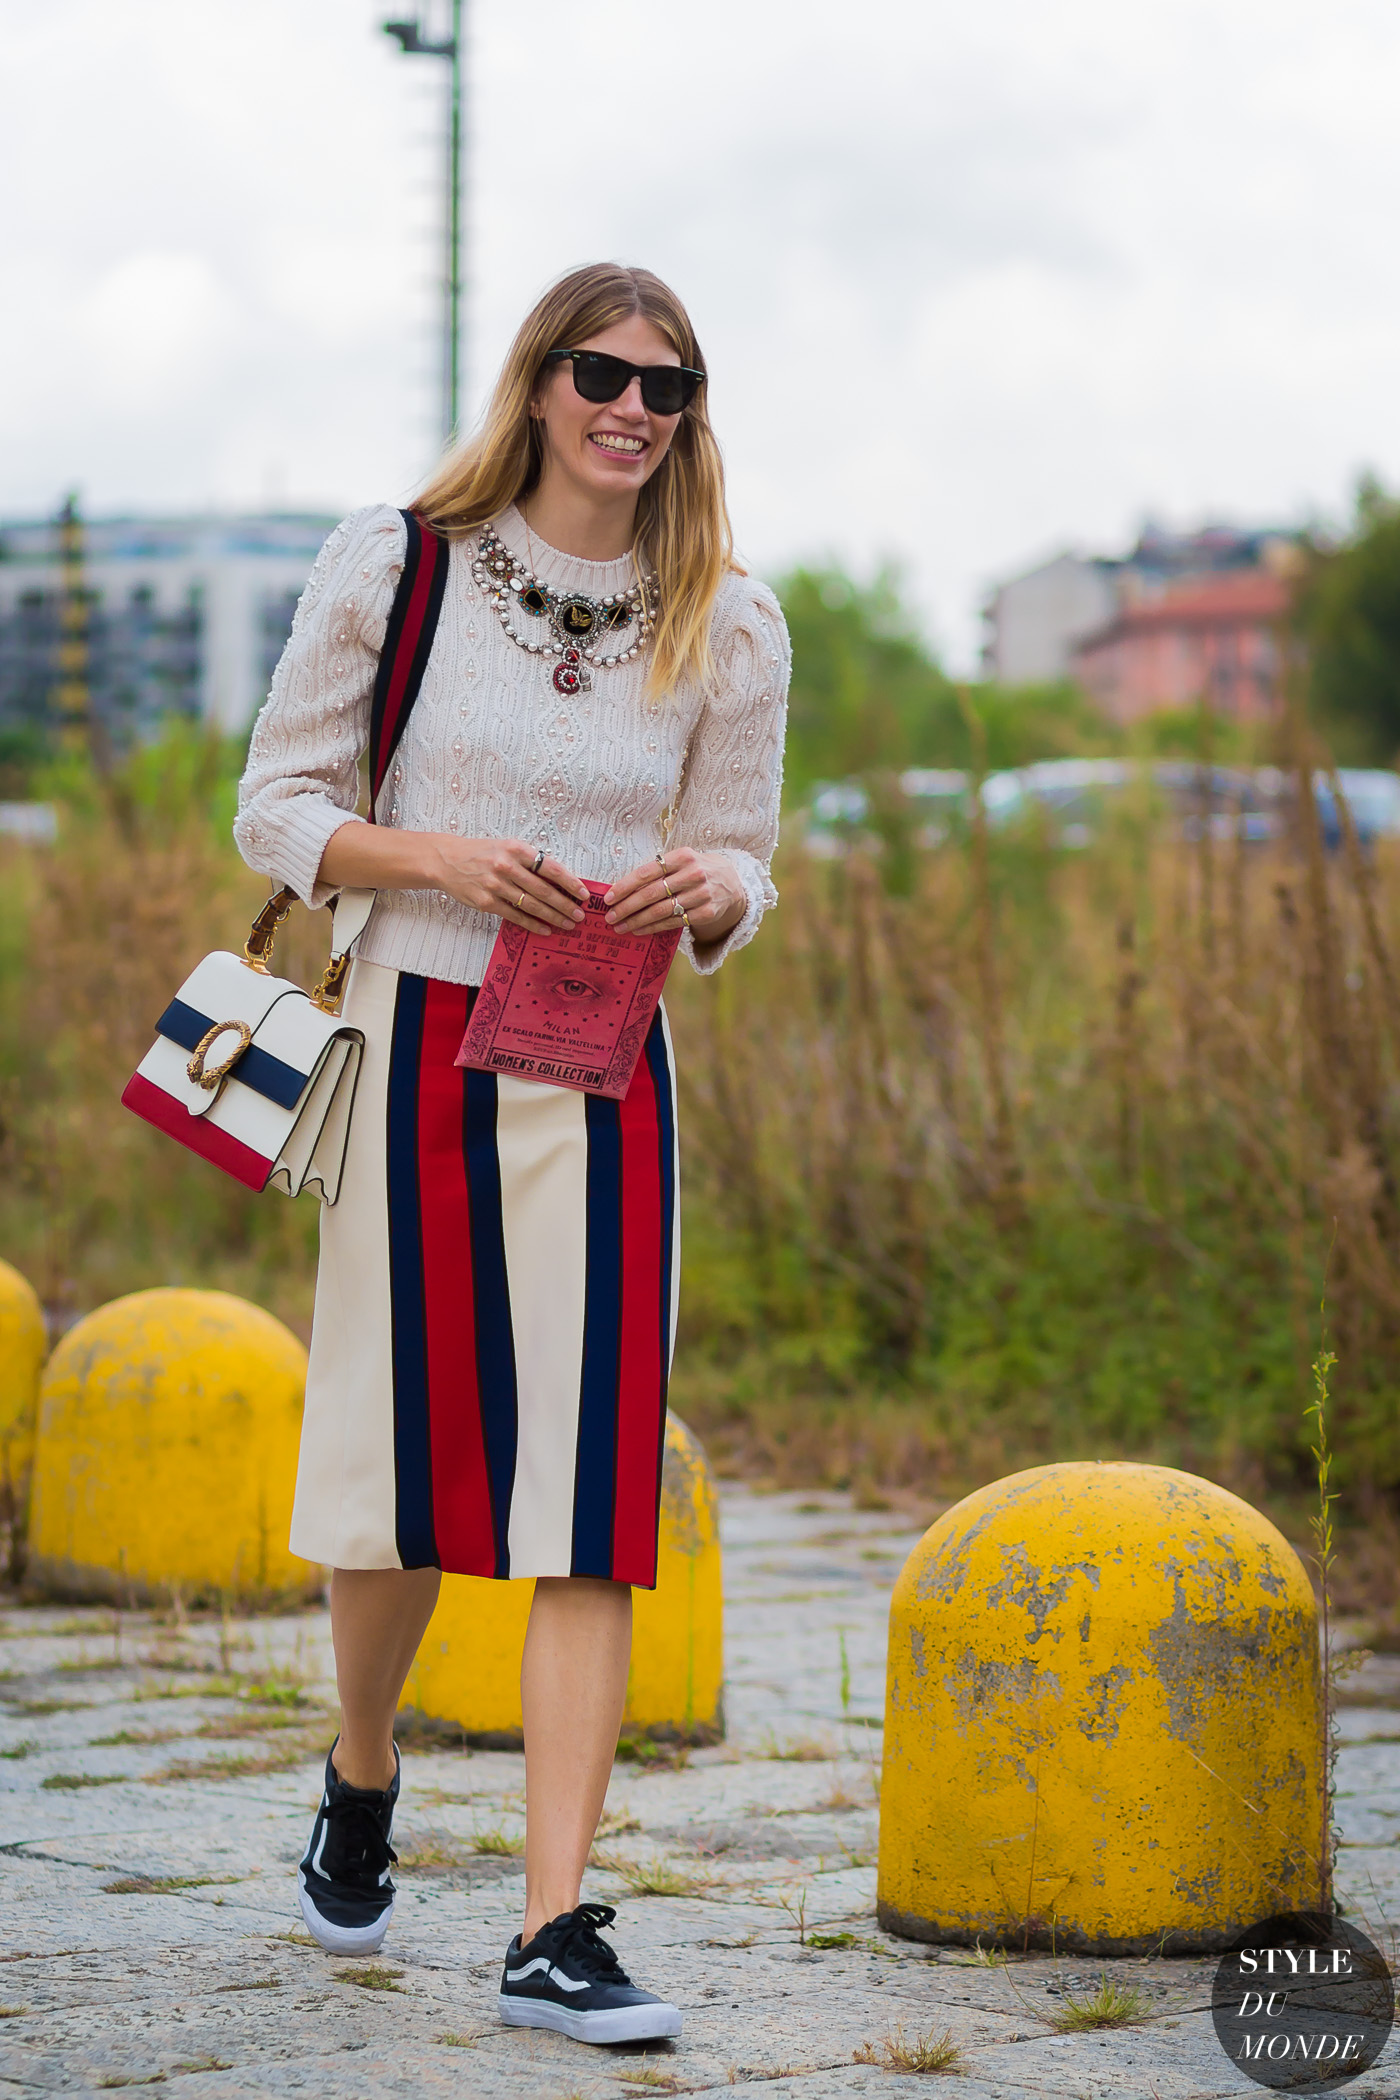 veronika-heilbrunner-by-styledumonde-street-style-fashion-photography